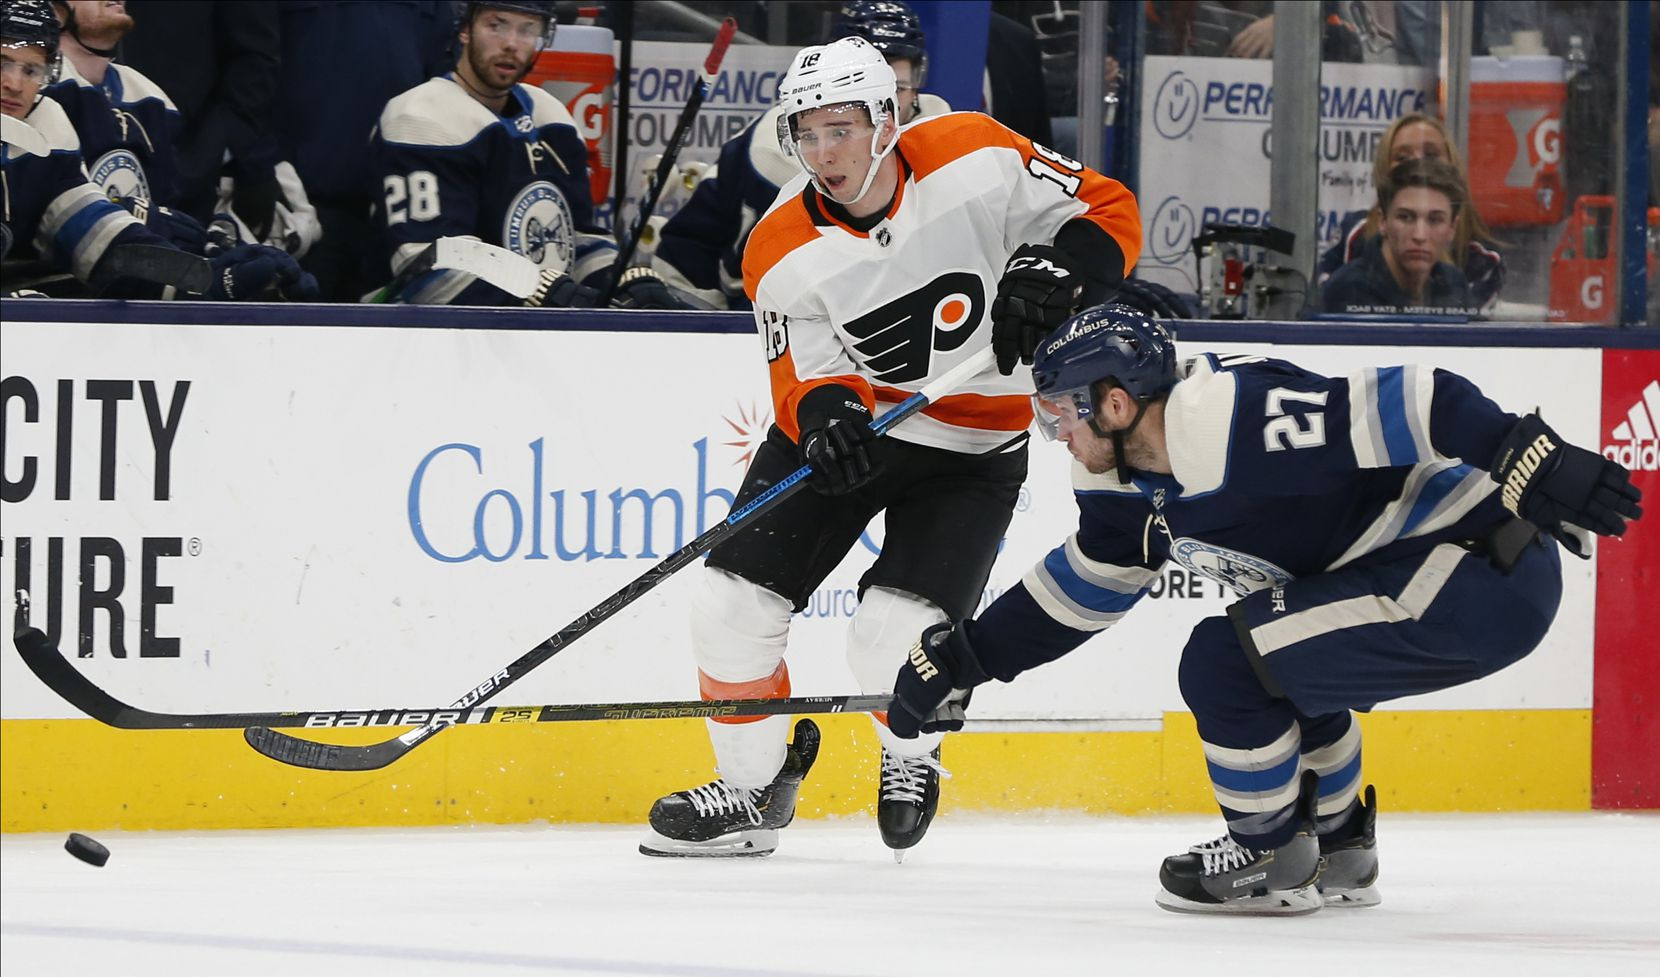 Philadelphia Flyers' Tyler Pitlick, left, dumps the puck past Columbus Blue Jackets' Ryan Murray during the third period of an NHL hockey game Wednesday, Nov. 27, 2019, in Columbus, Ohio. The Flyers won 3-2. (AP Photo/Jay LaPrete)